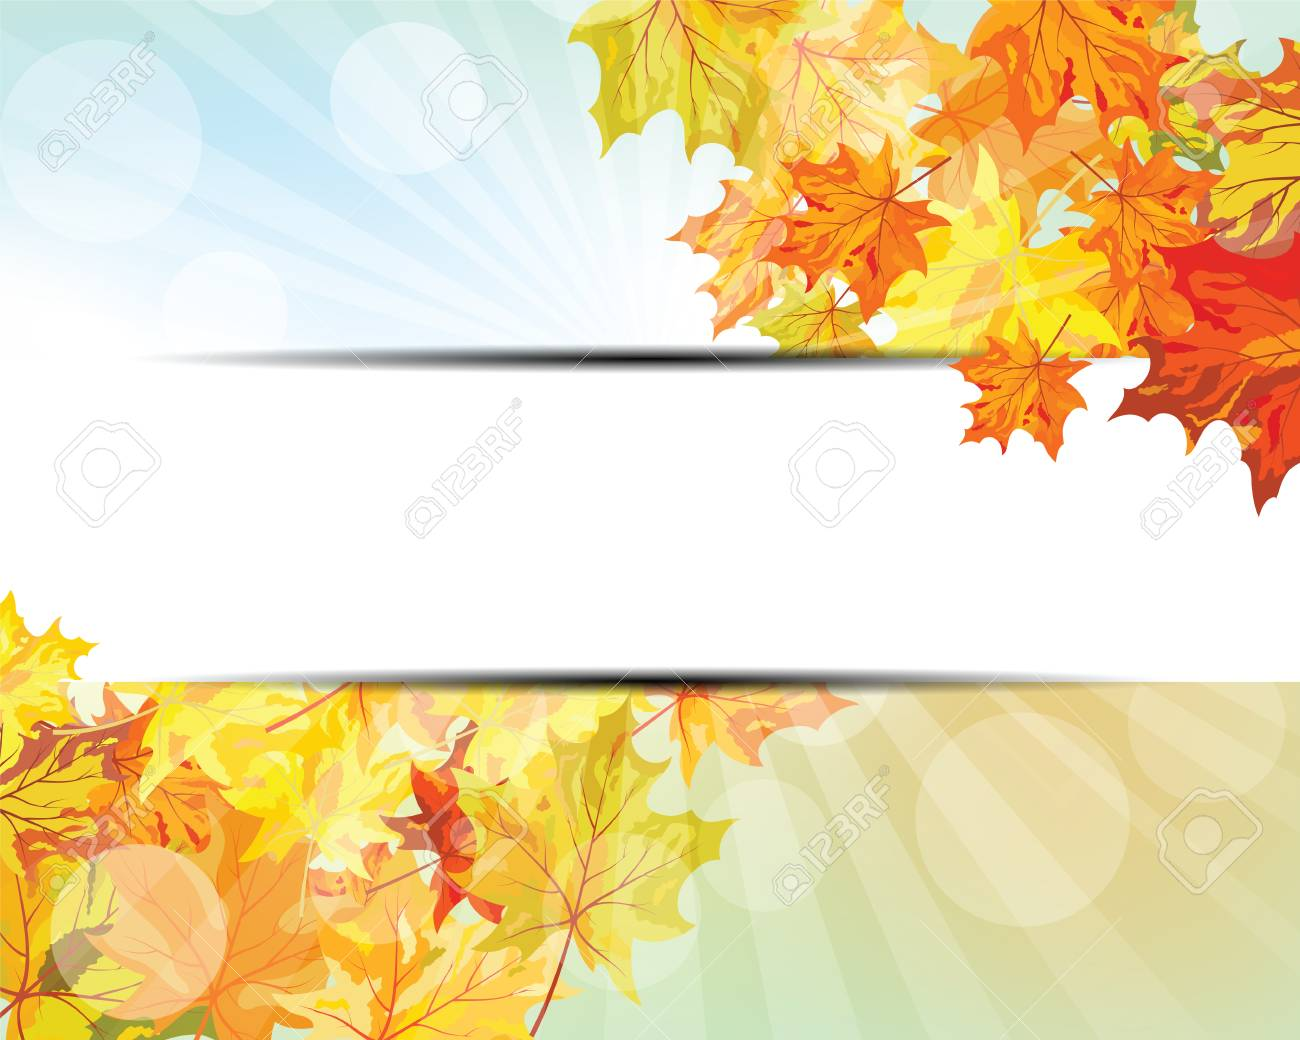 Autumn Frame With Falling Maple Leaves On Sky Background. Elegant Design  With Rays Of Sun